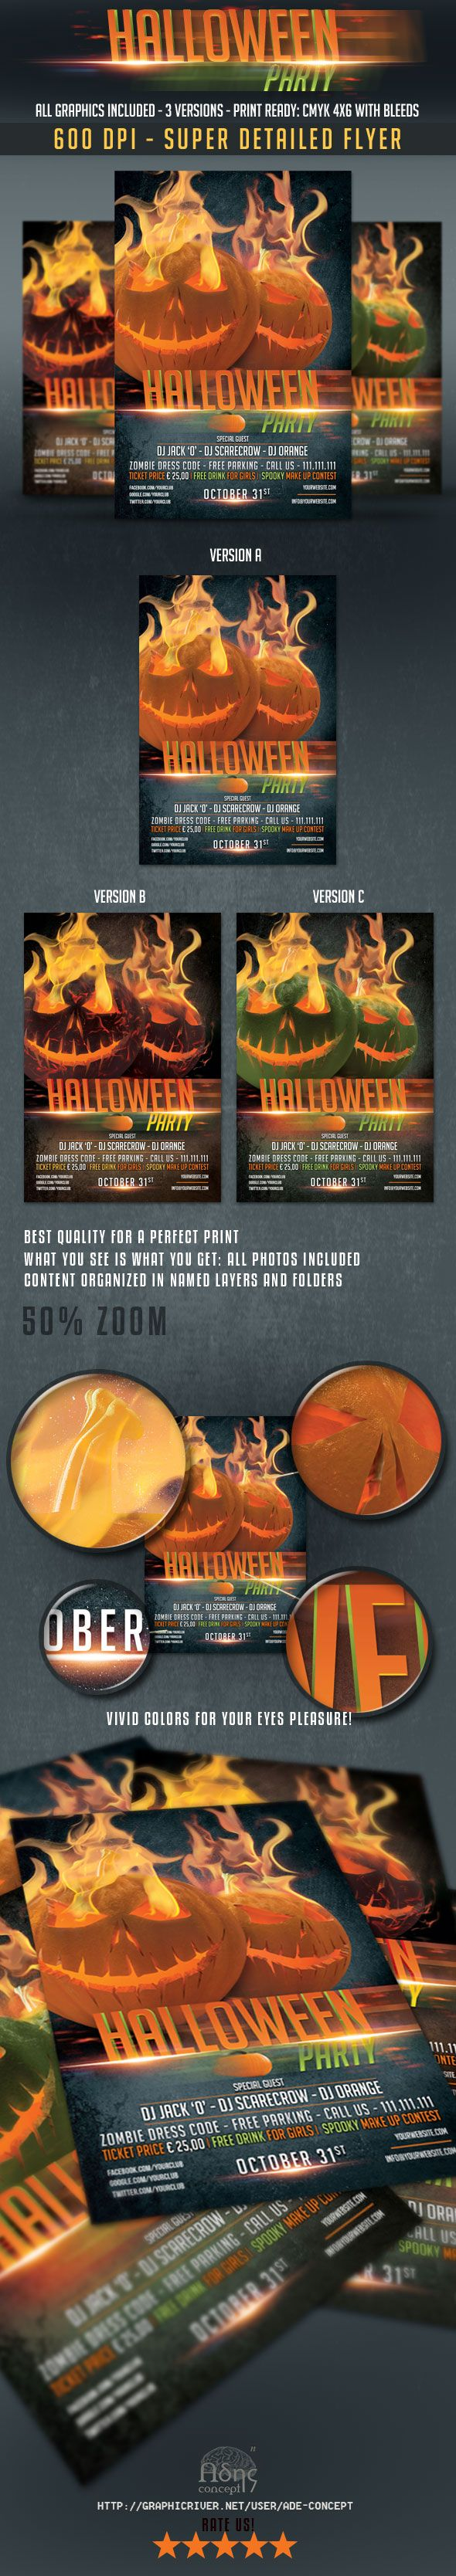 Halloween Flyer Template on GraphicRiver  #halloween #flyer #template #graphicriver  http://graphicriver.net/item/halloween-flyer/9032133?WT.ac=portfolio&WT.z_author=ade-concept&ref=ade-concept